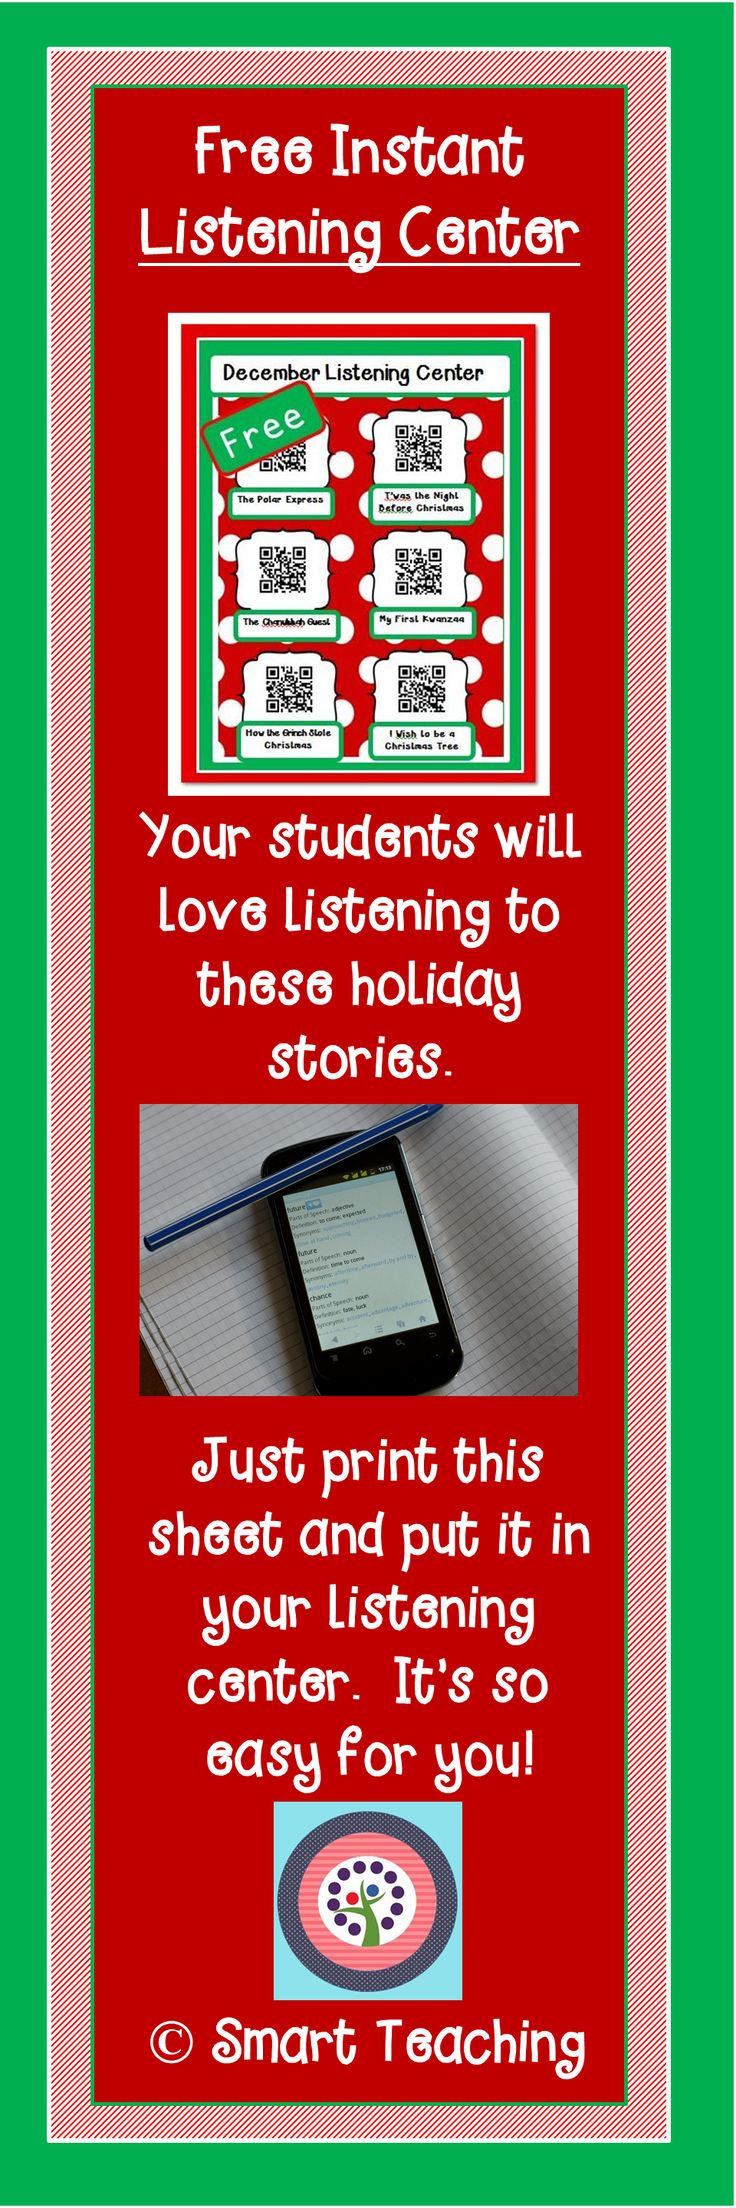 This is so easy for you!  Just print this sheet of QR codes and put it in your listening center.  Students can scan the codes and listen to the stories.  It includes three December holidays.